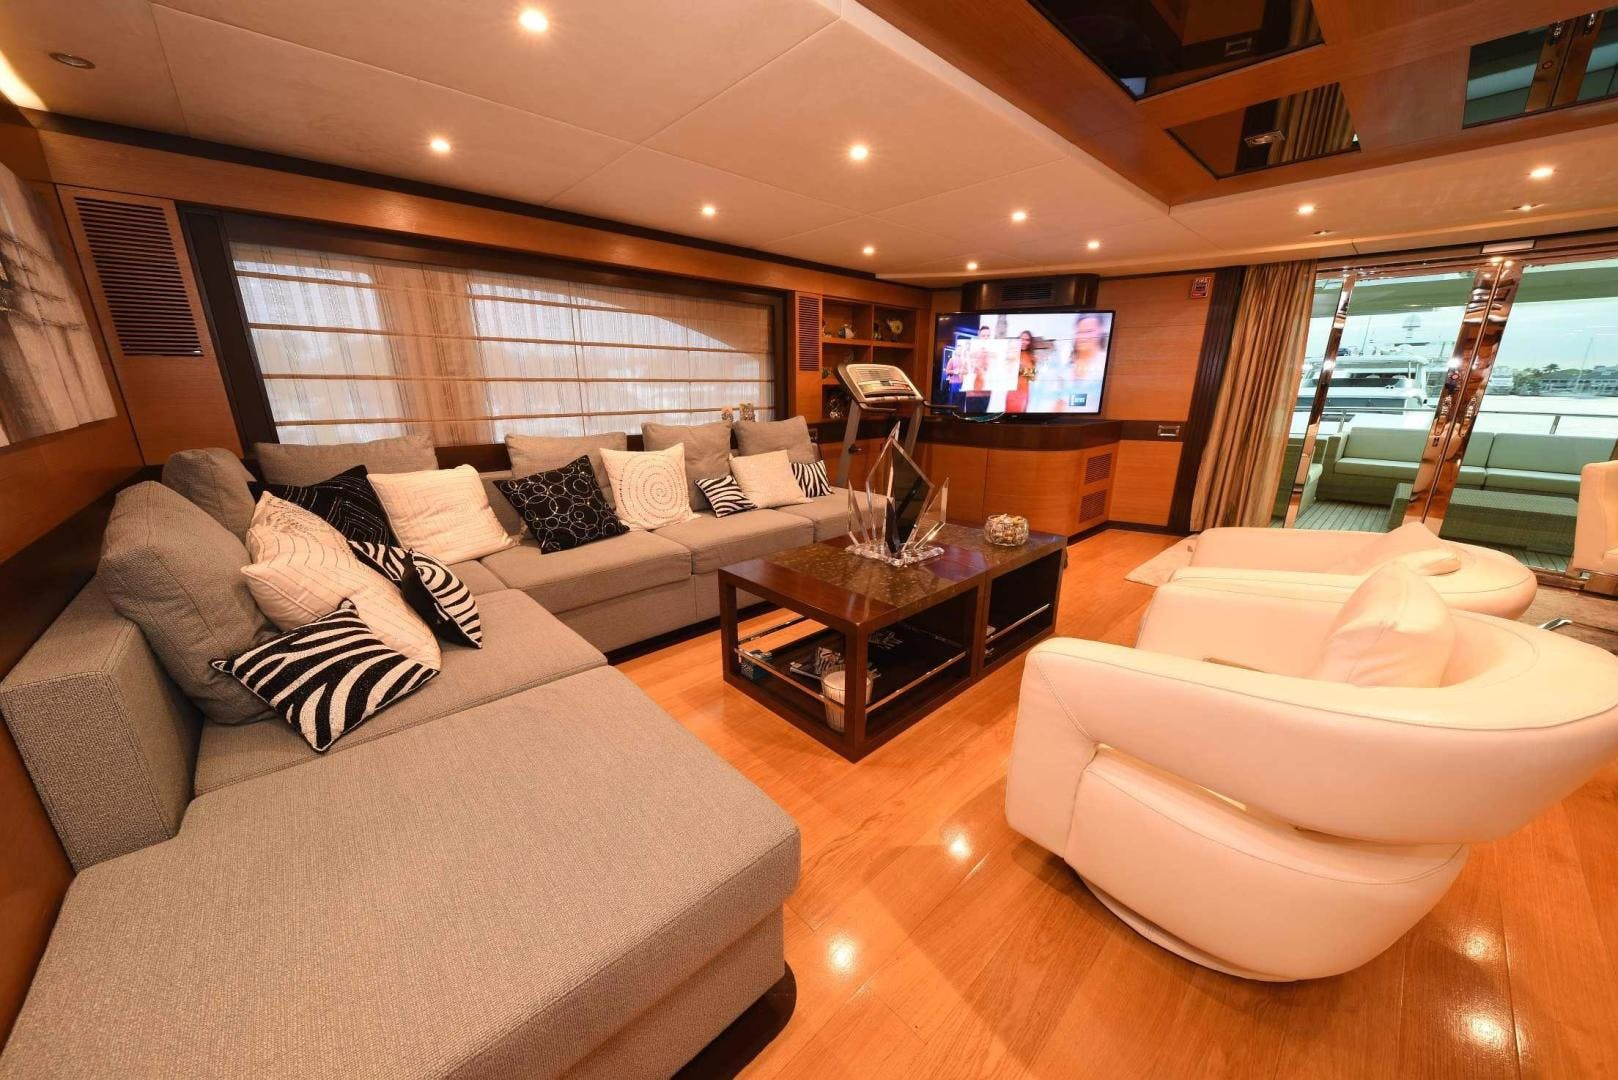 2010 IAG 127' Motor Yacht KIMBERLIE   Picture 2 of 53